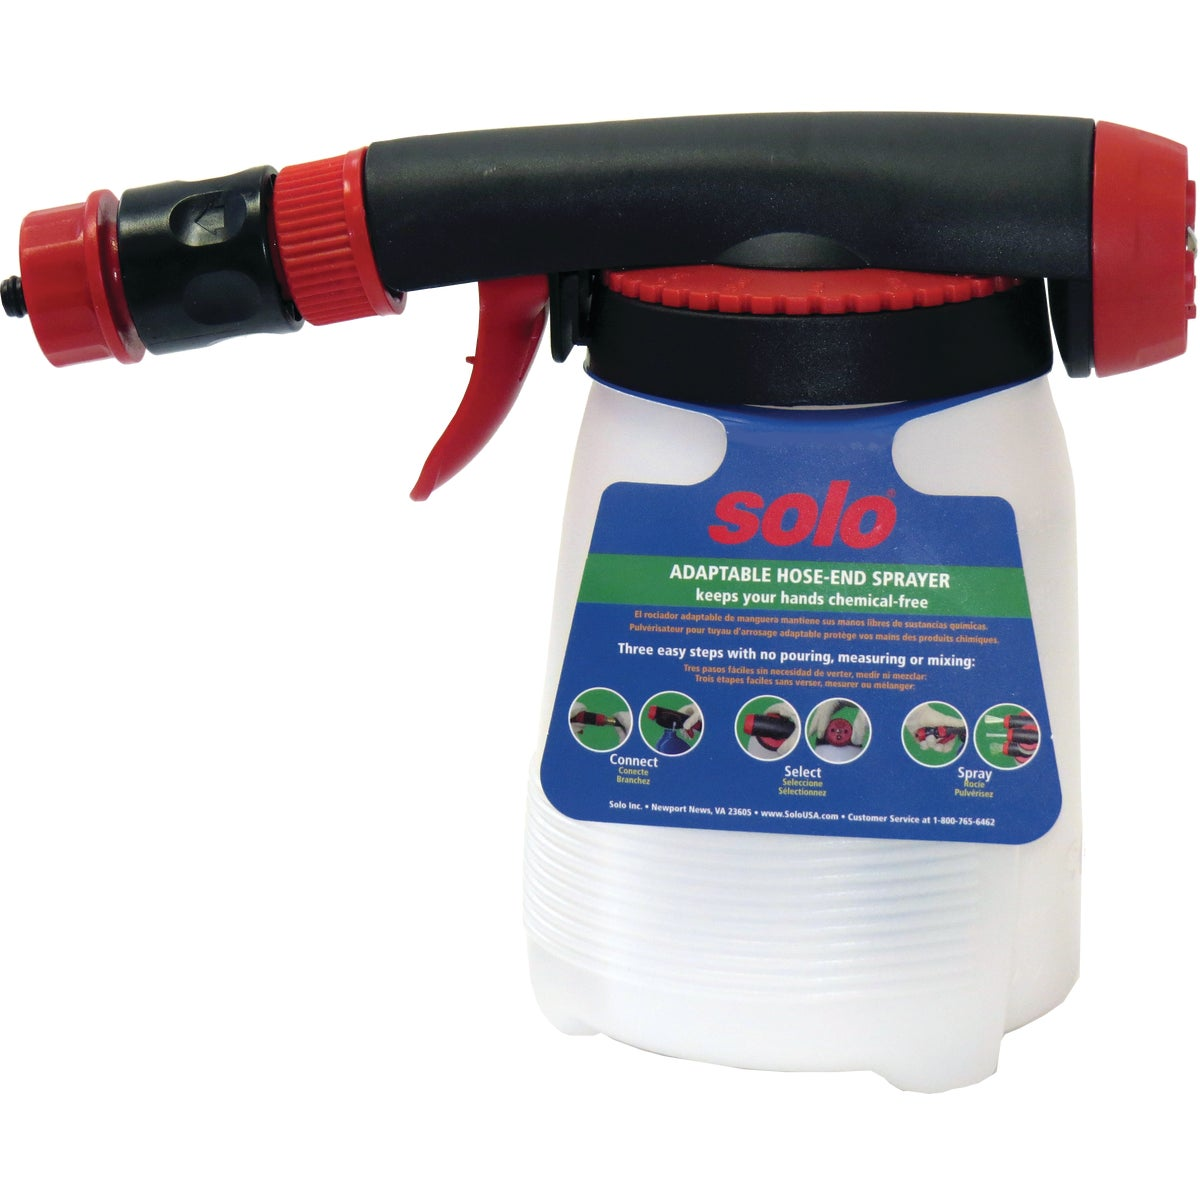 CHAMELN HOSE END SPRAYER - 405-HE by Solo Inc